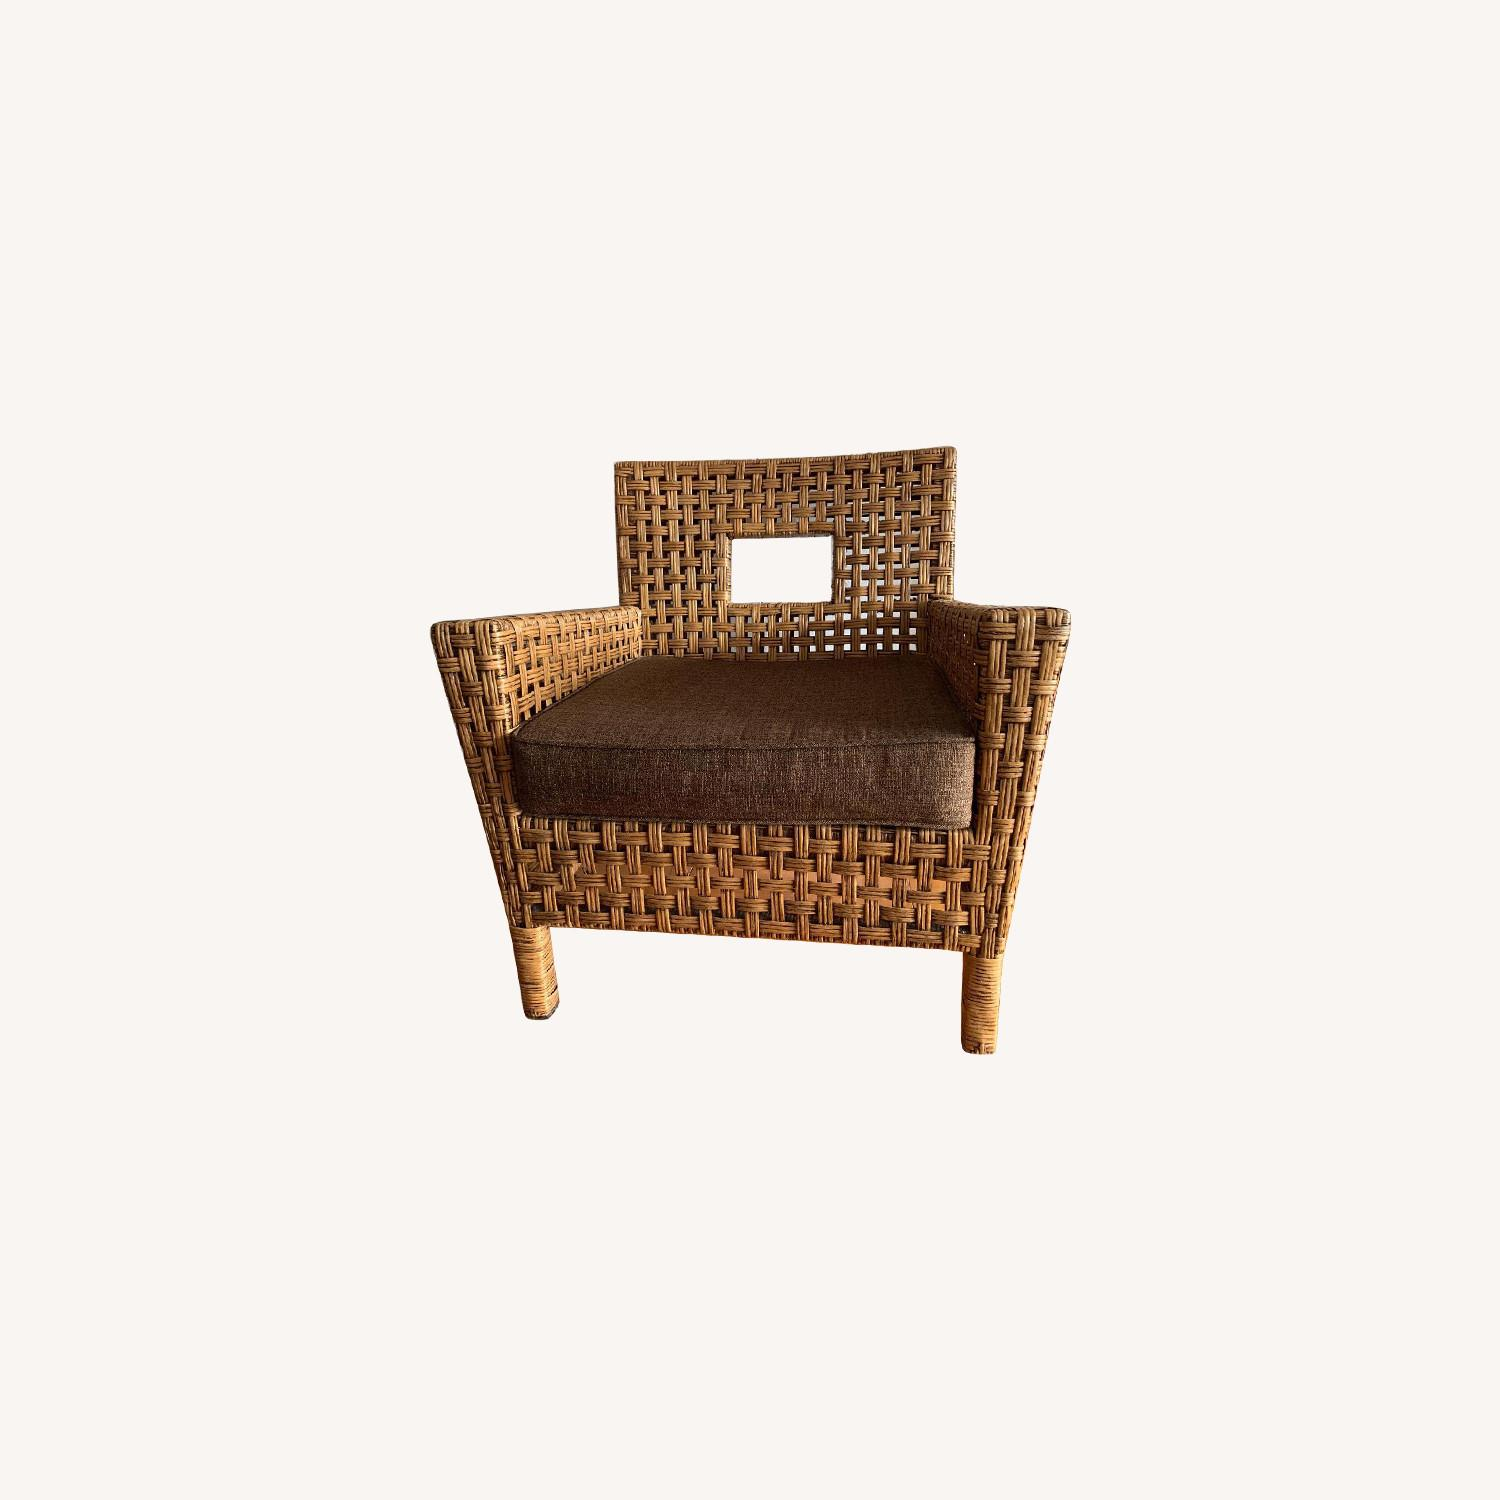 Pier 1 Wicker Chairs w/ Removable Cushions - image-0